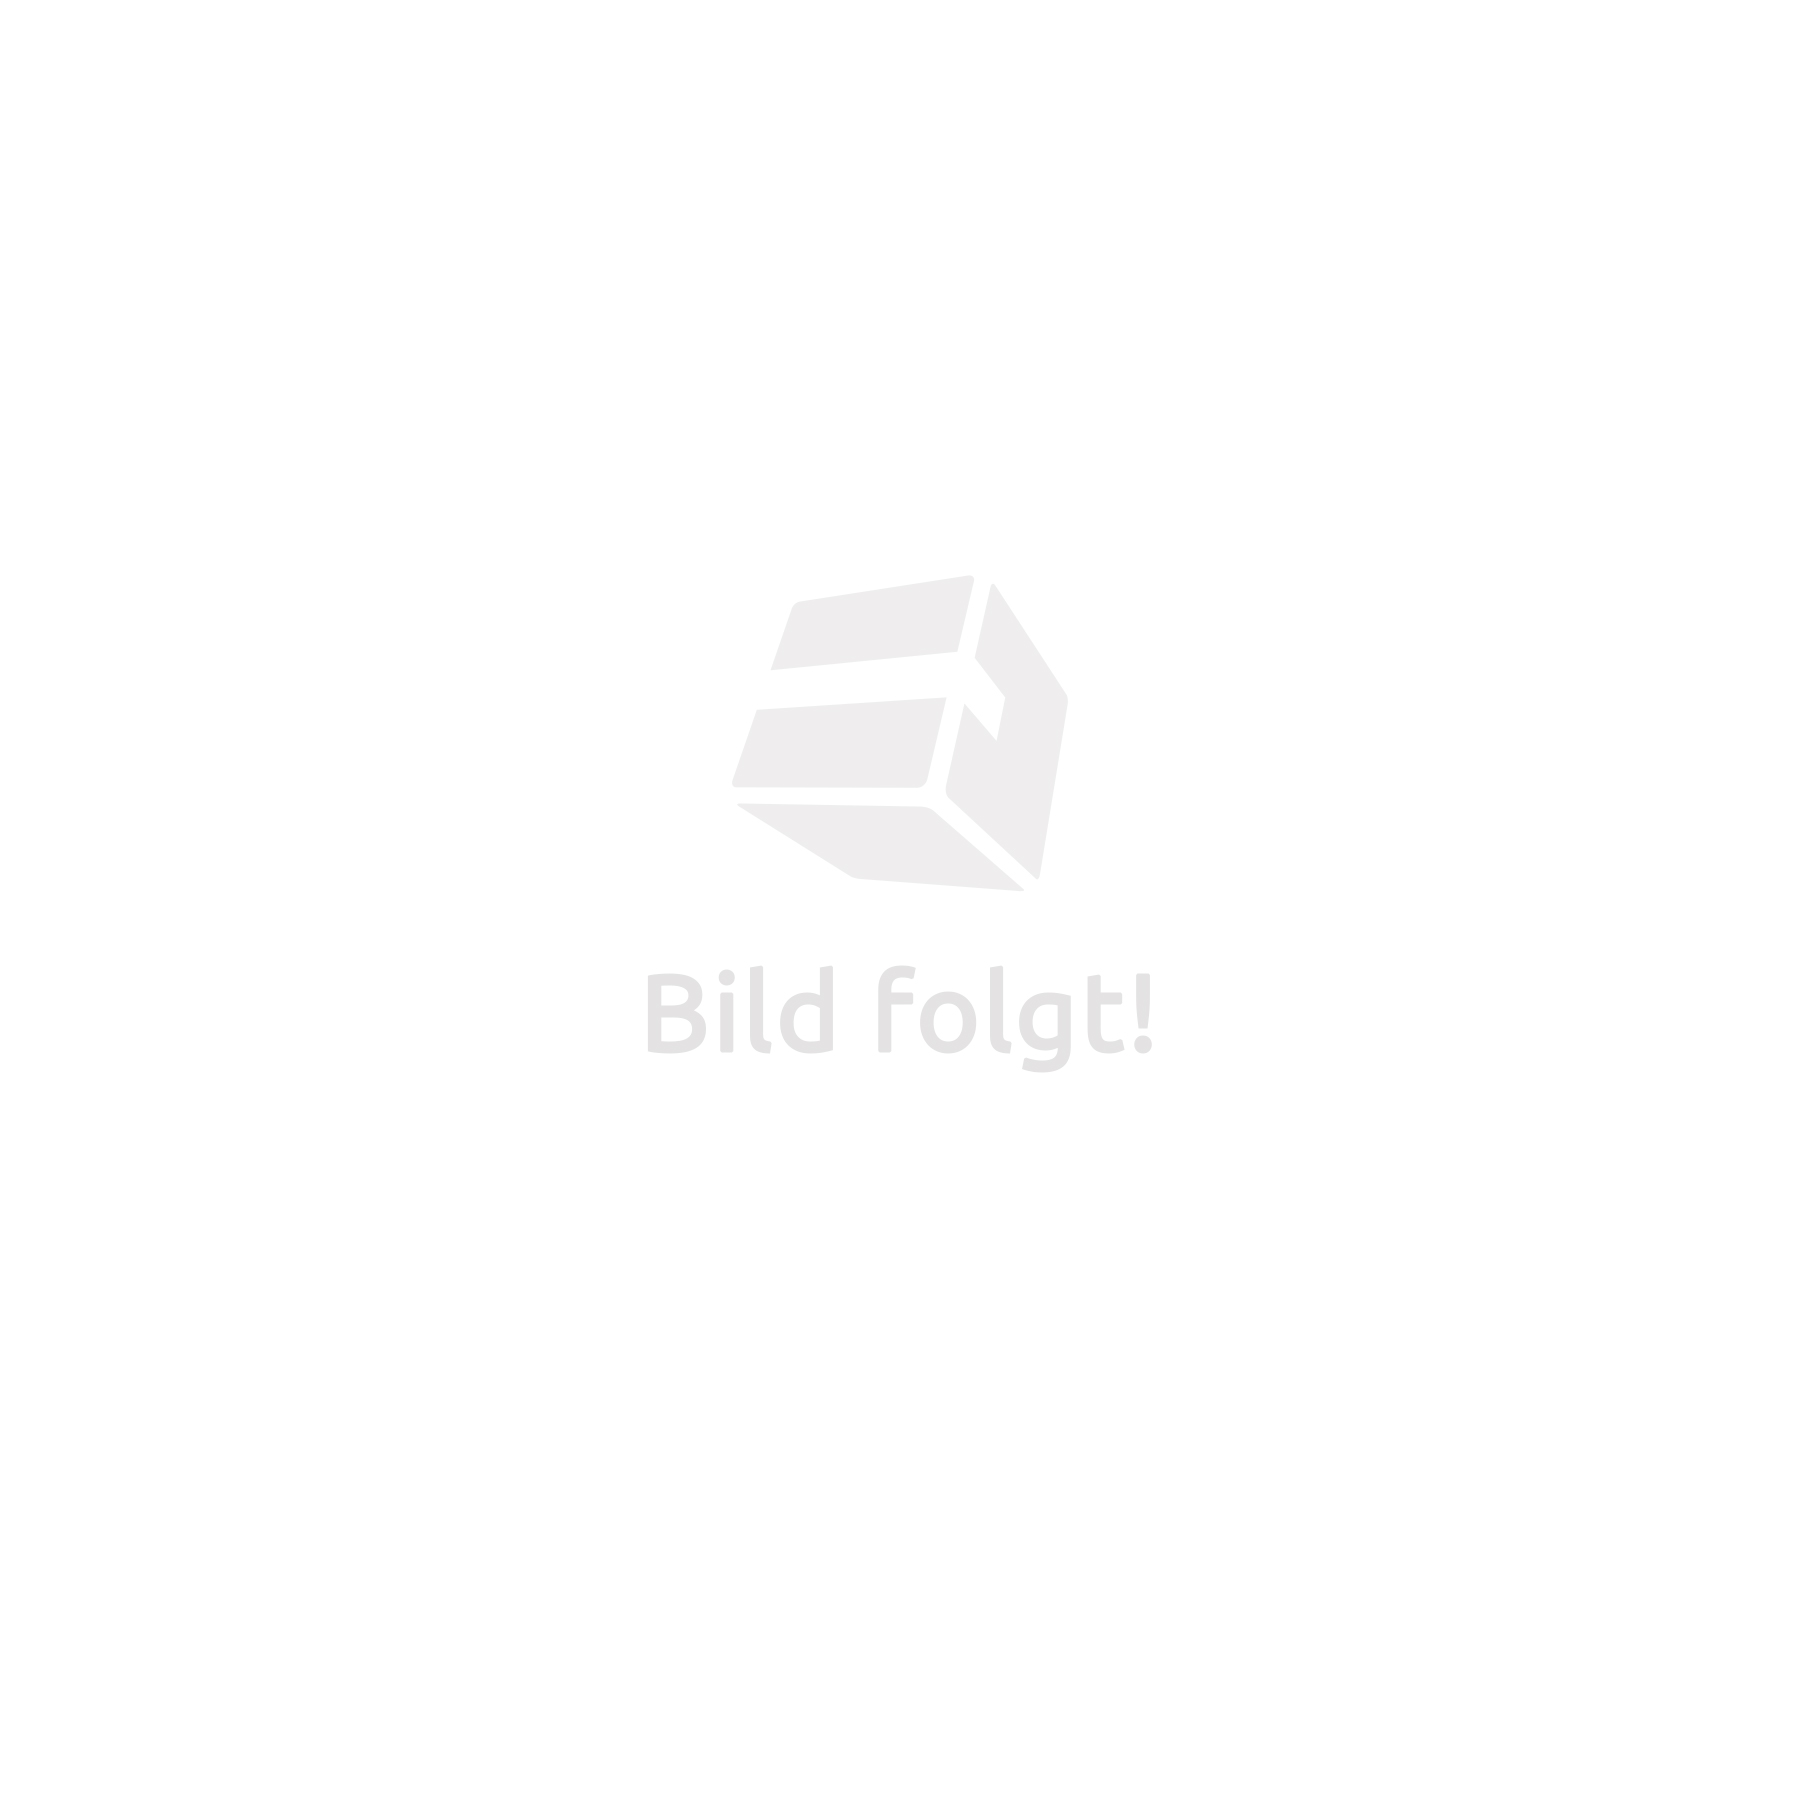 Toile solaire avec Protection UV Triangulaire